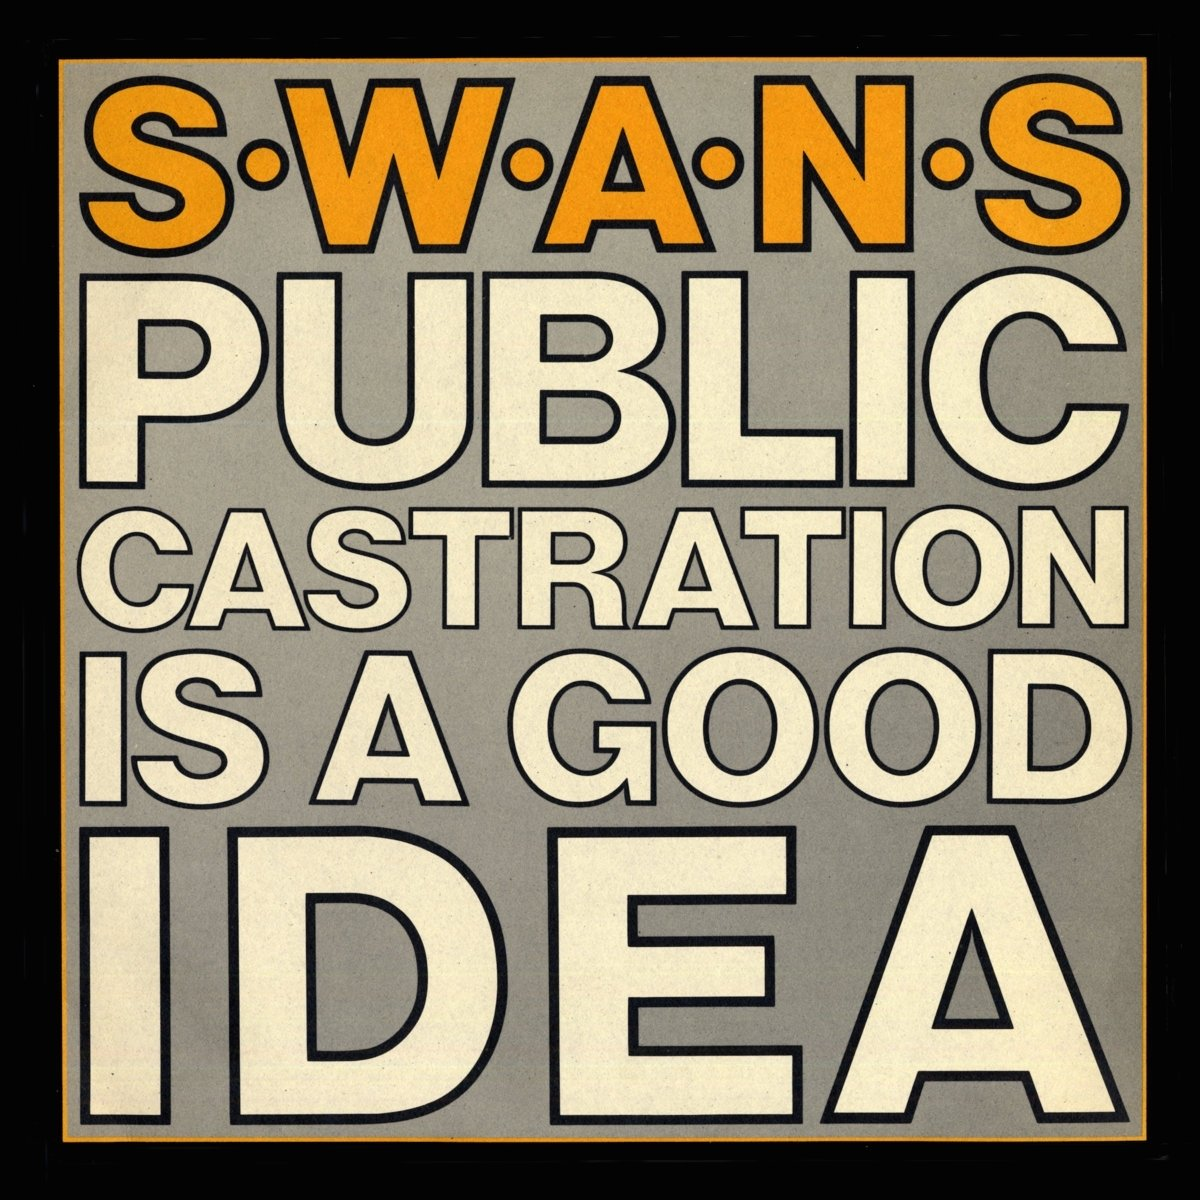 public castration is a good idea | swans